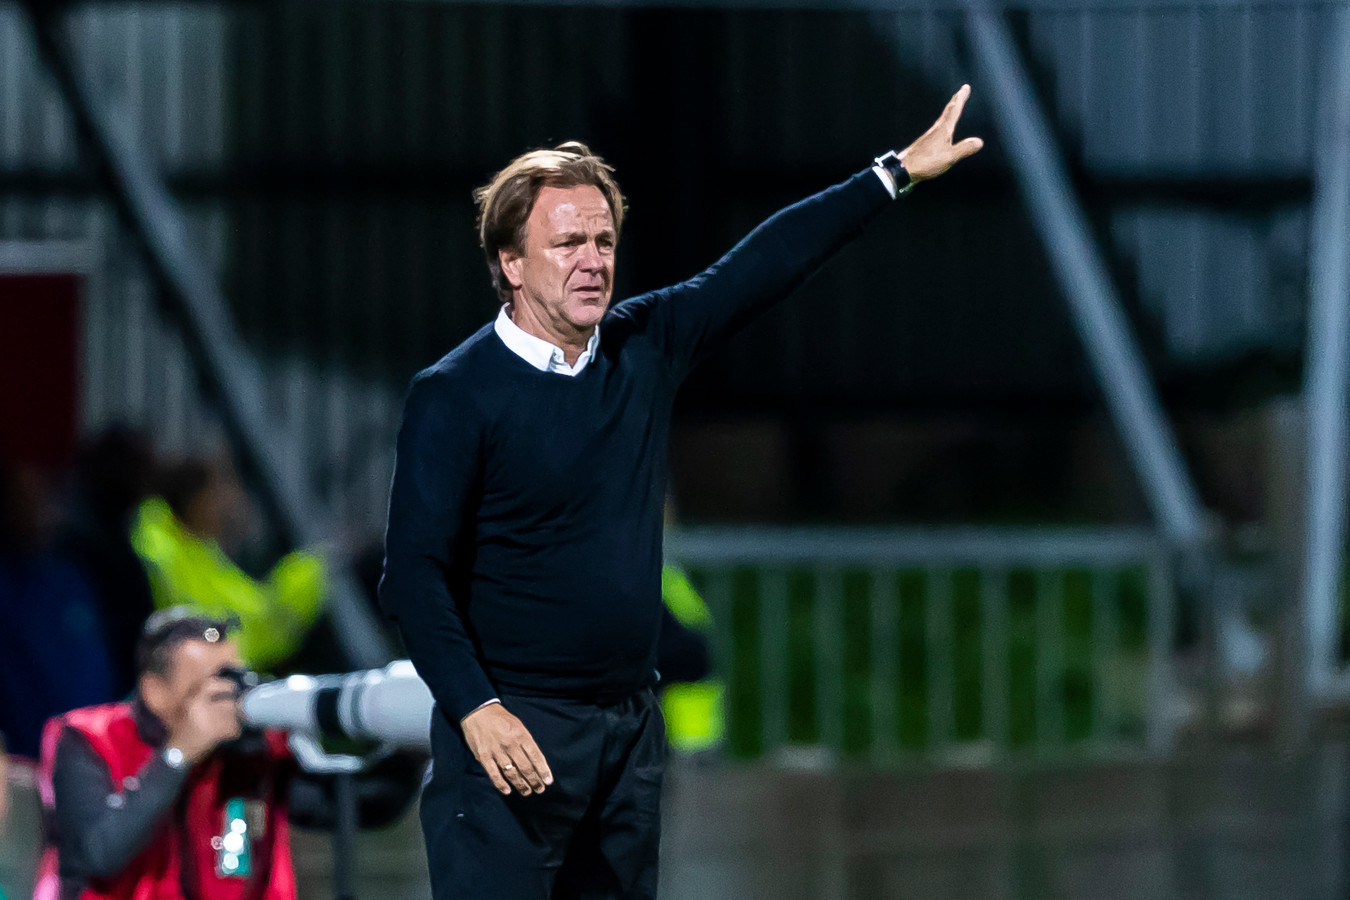 Mike Snoei, trainer van Telstar